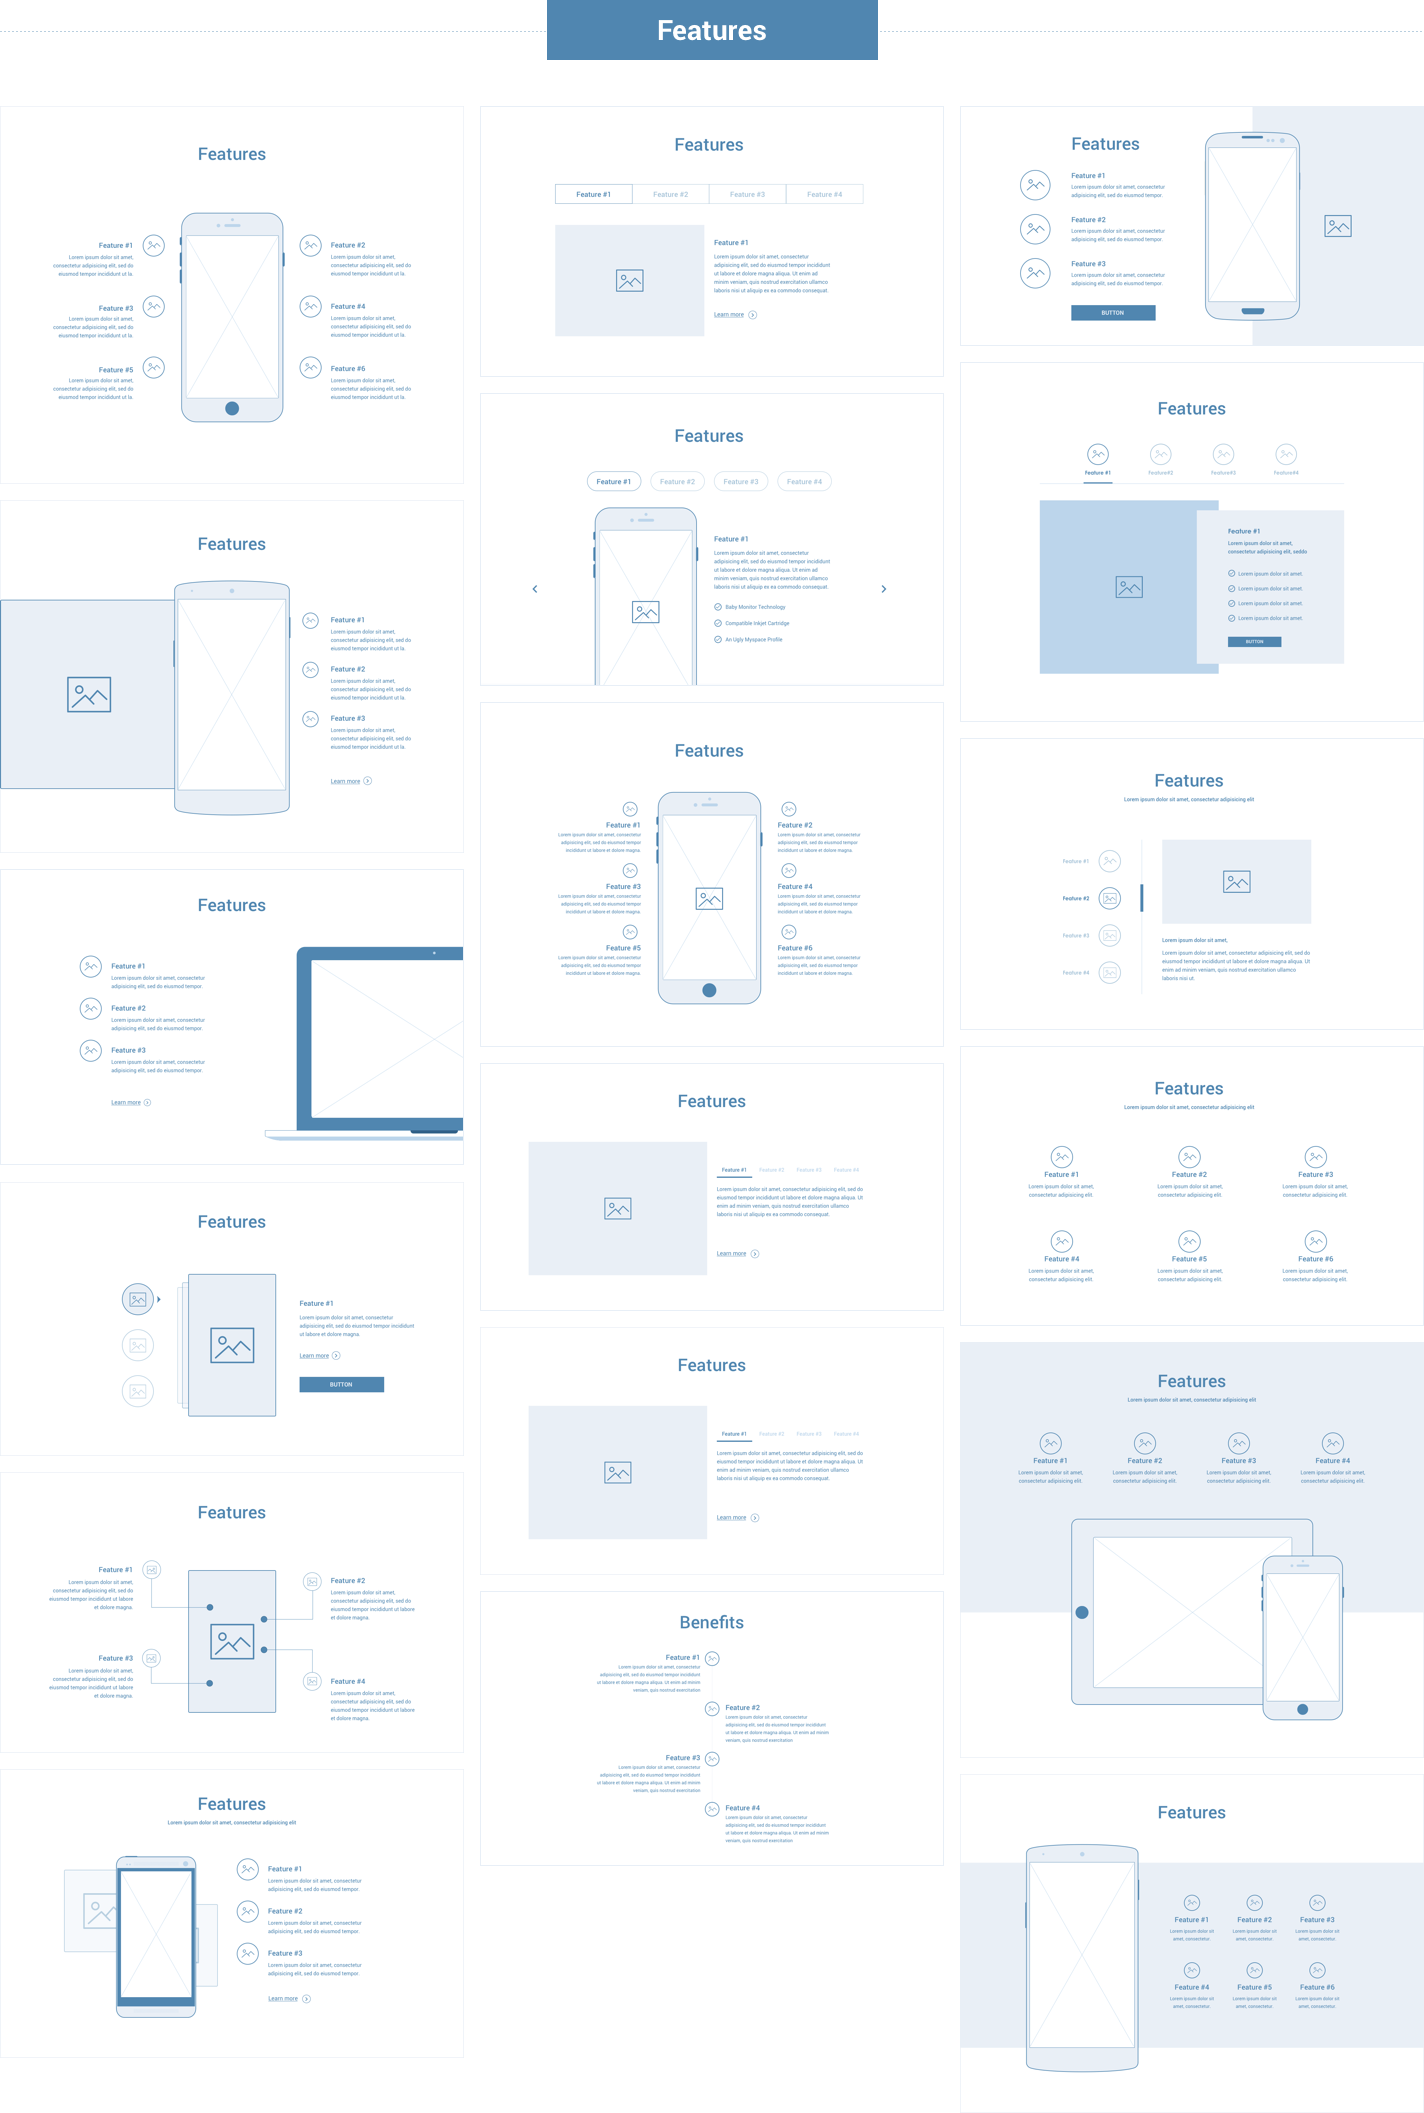 Wireframe for web - Features